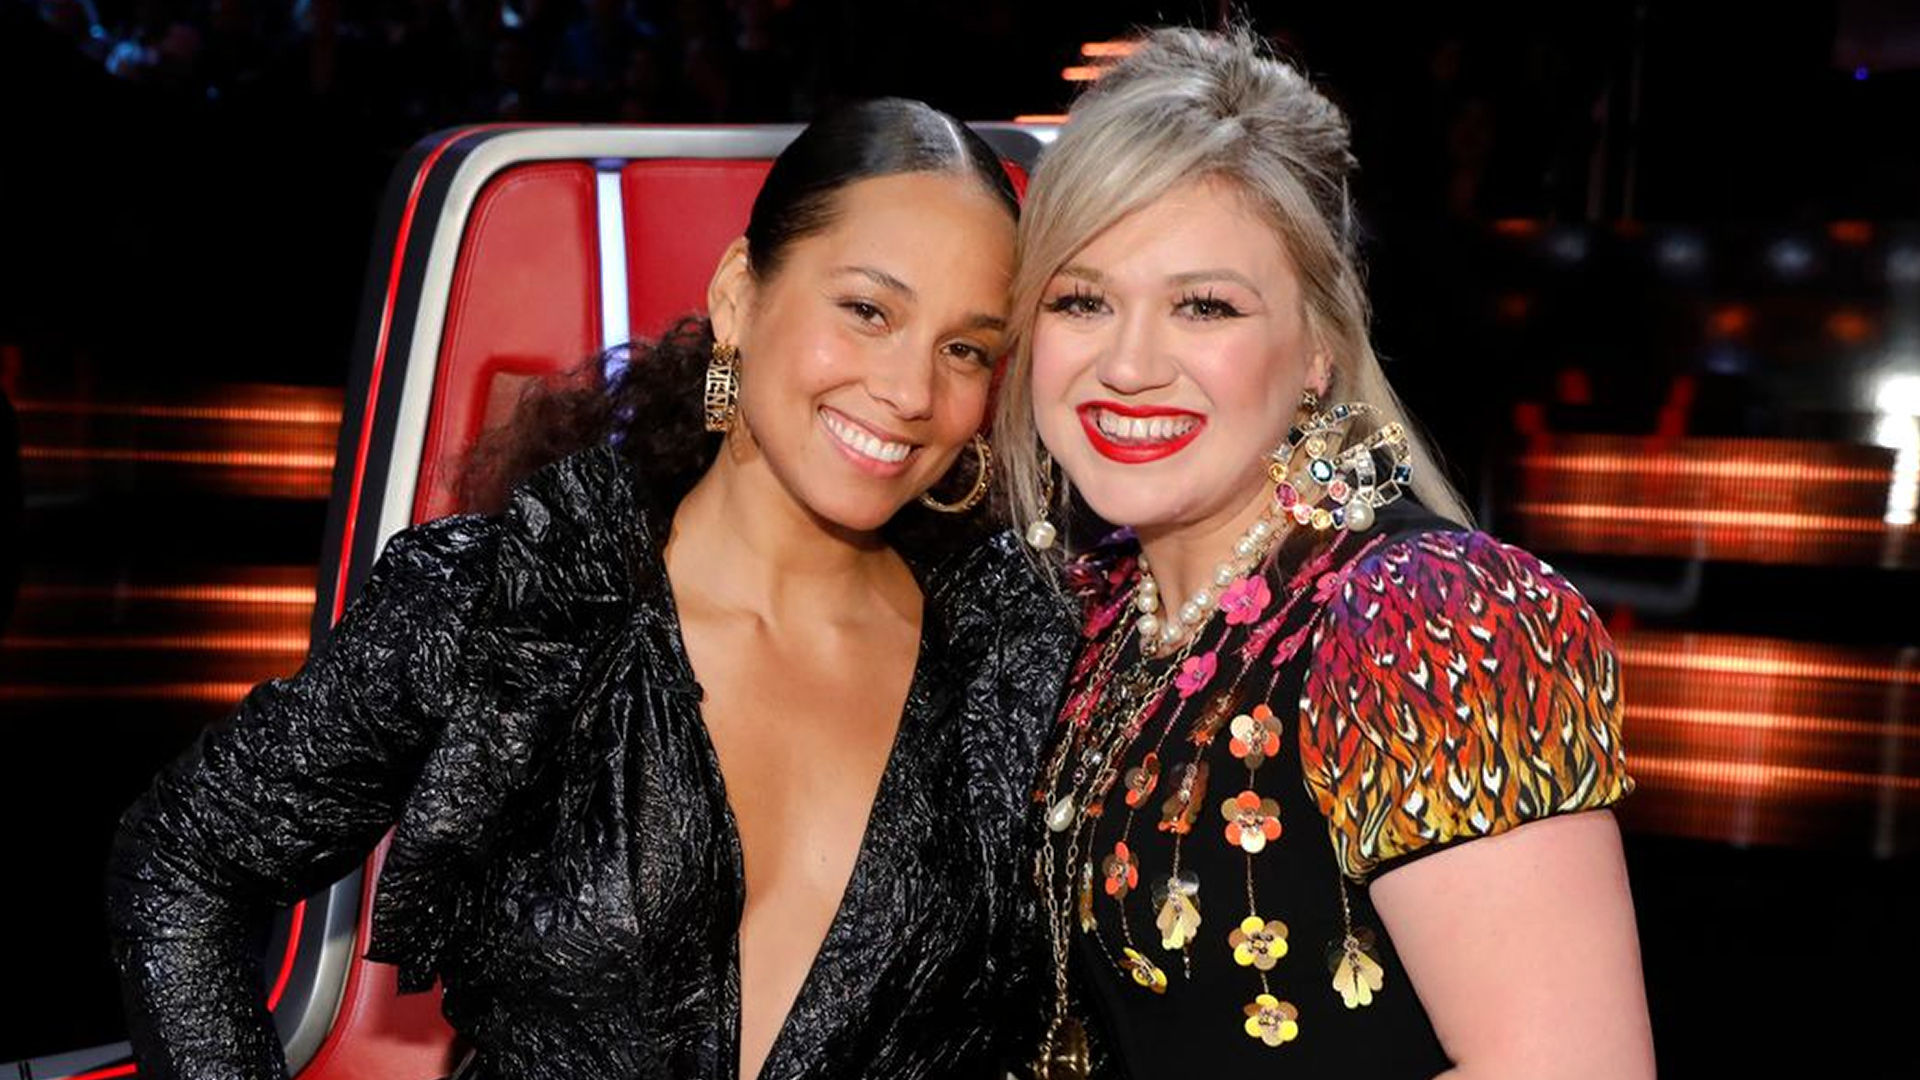 Watch The Voice USA 2018 Playoffs 18 April 2018 With Real Time Voting online tonight